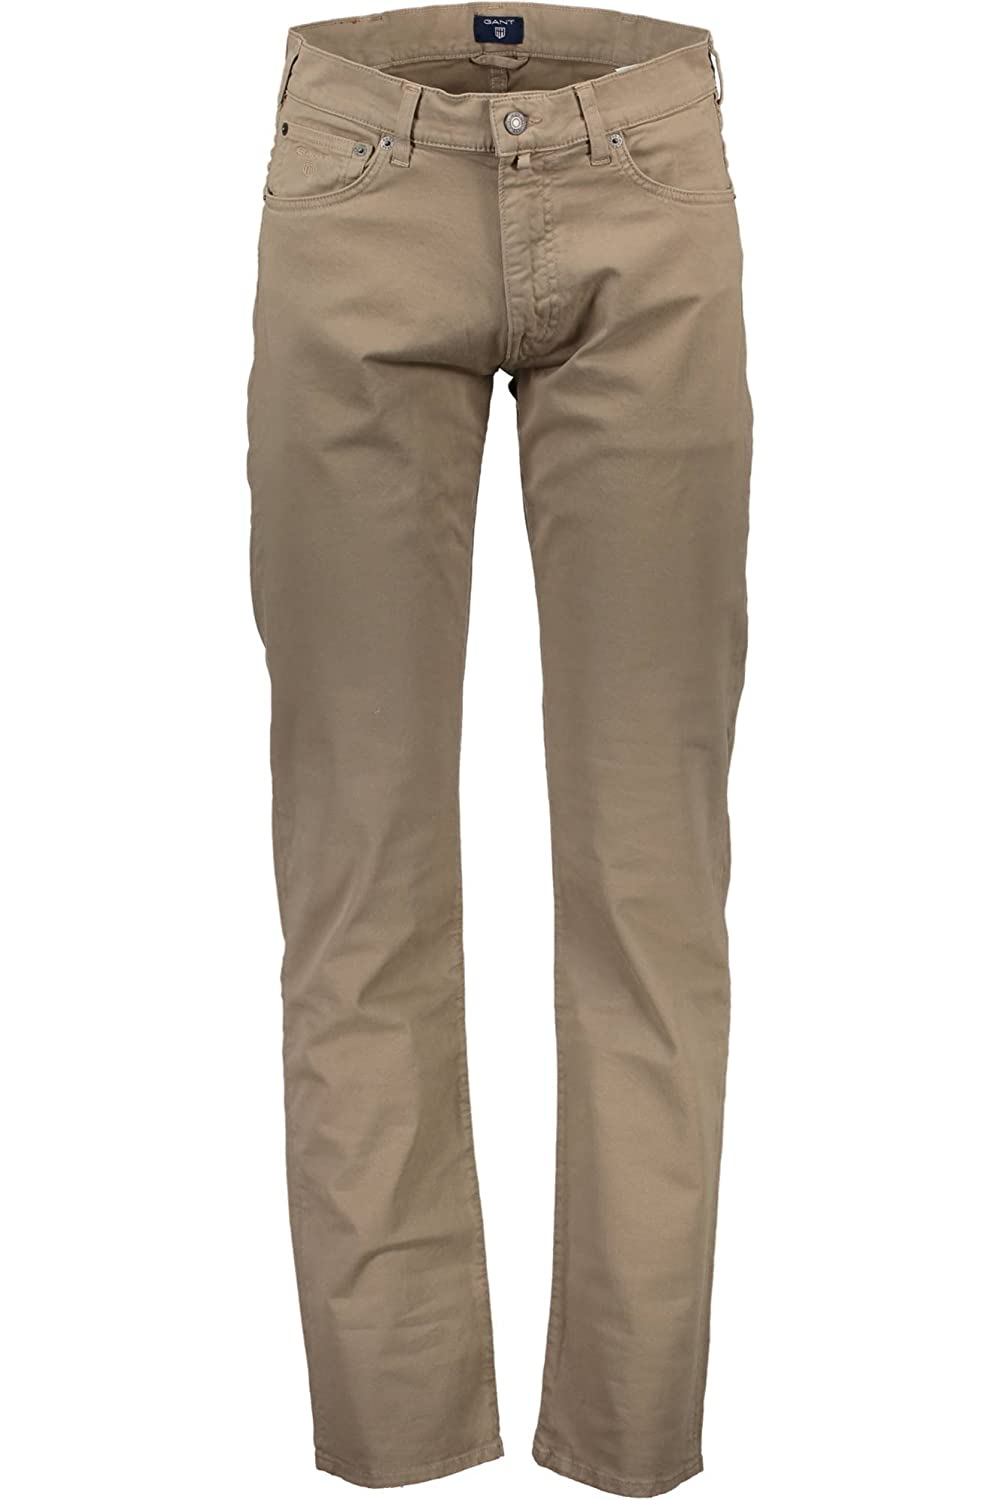 449ccd186a Gant Men's Tyler Comfort Desert Twill Jean: Amazon.co.uk: Clothing